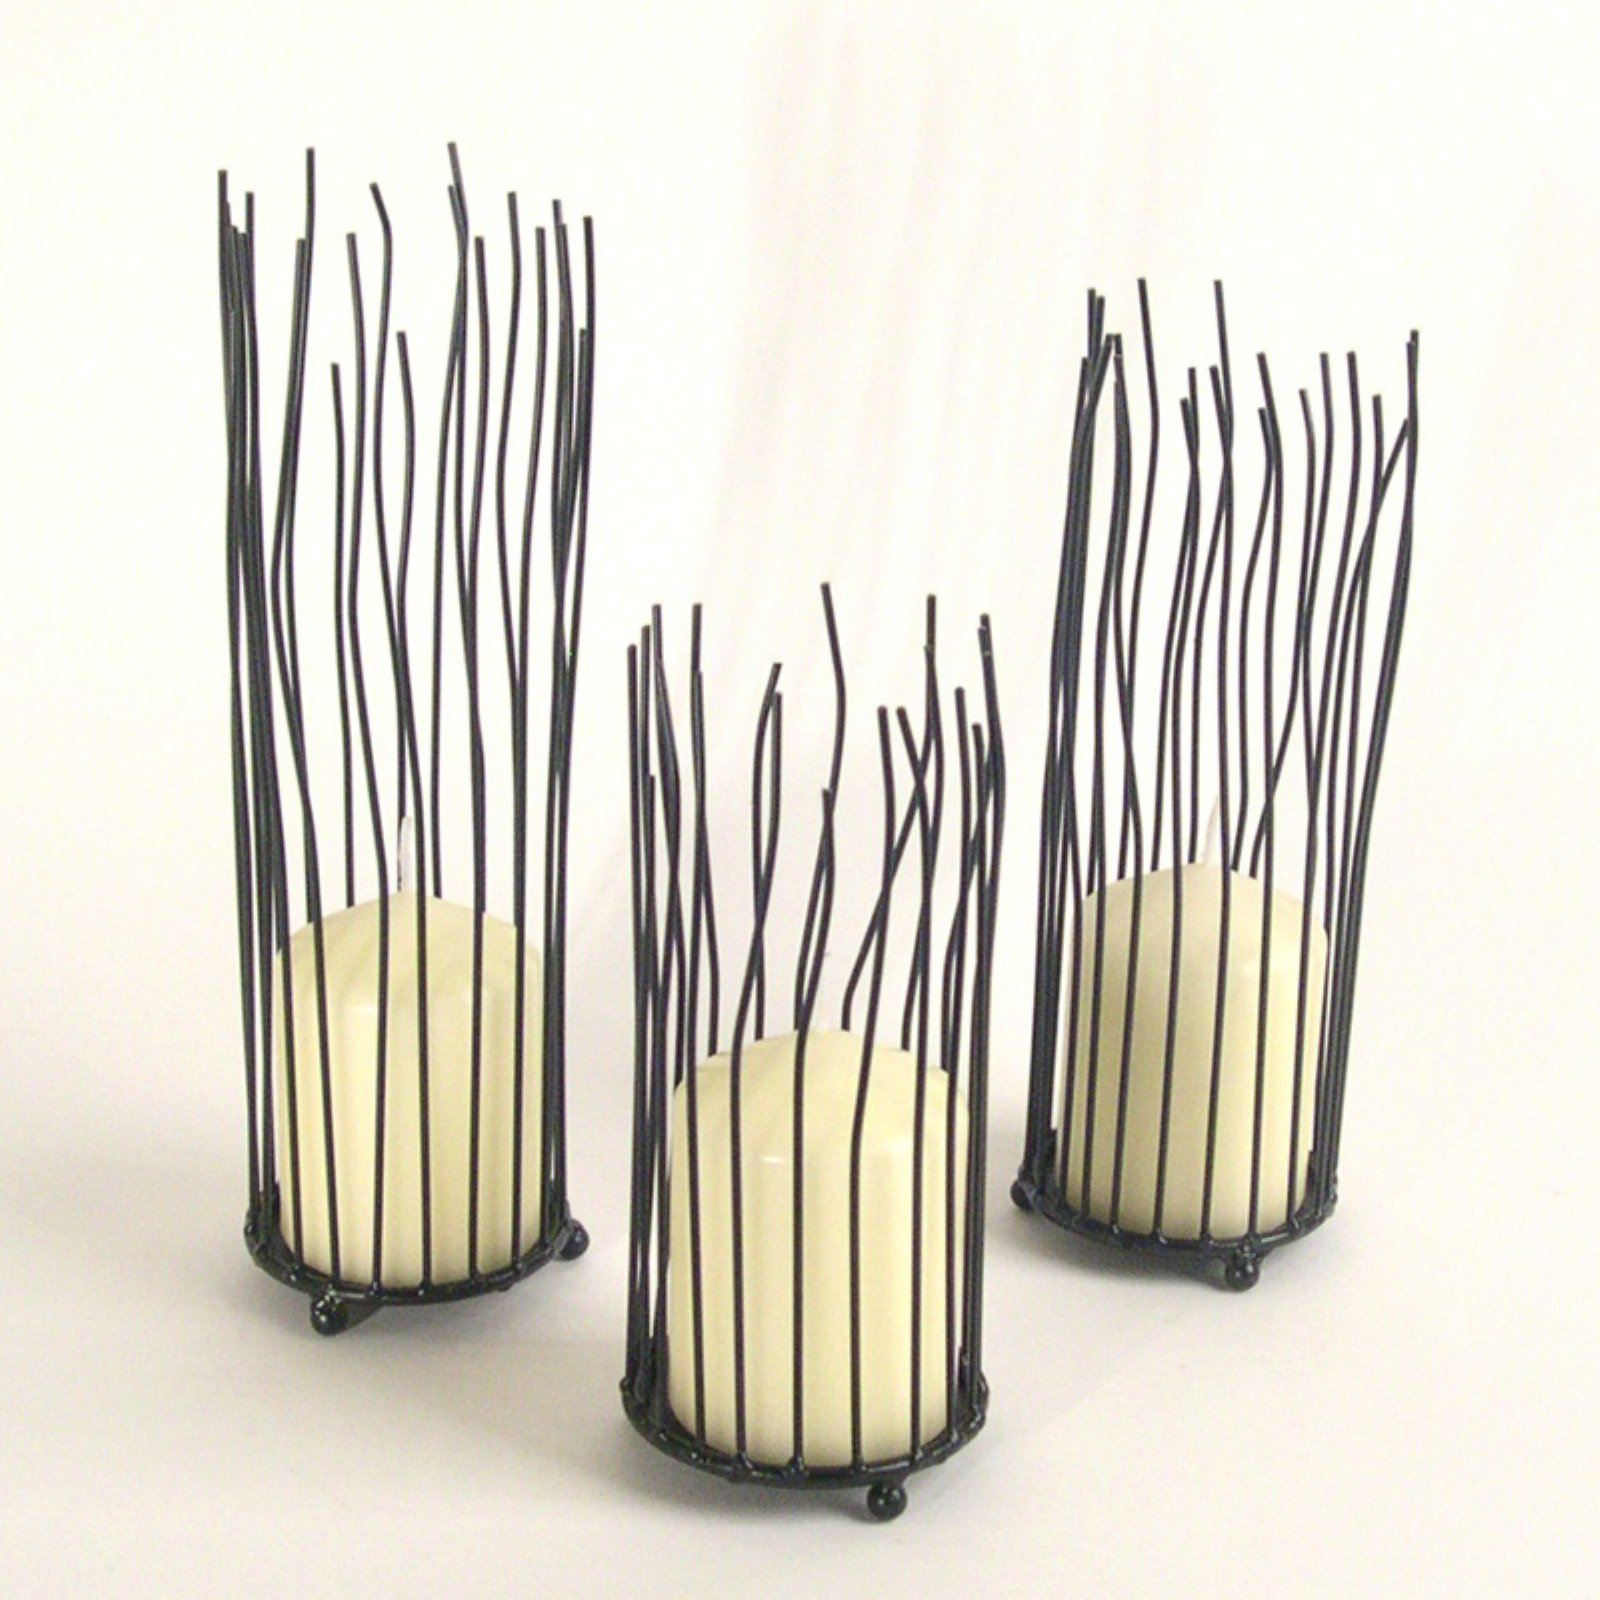 Danya B Willow Iron Candleholder - 3 Piece Set